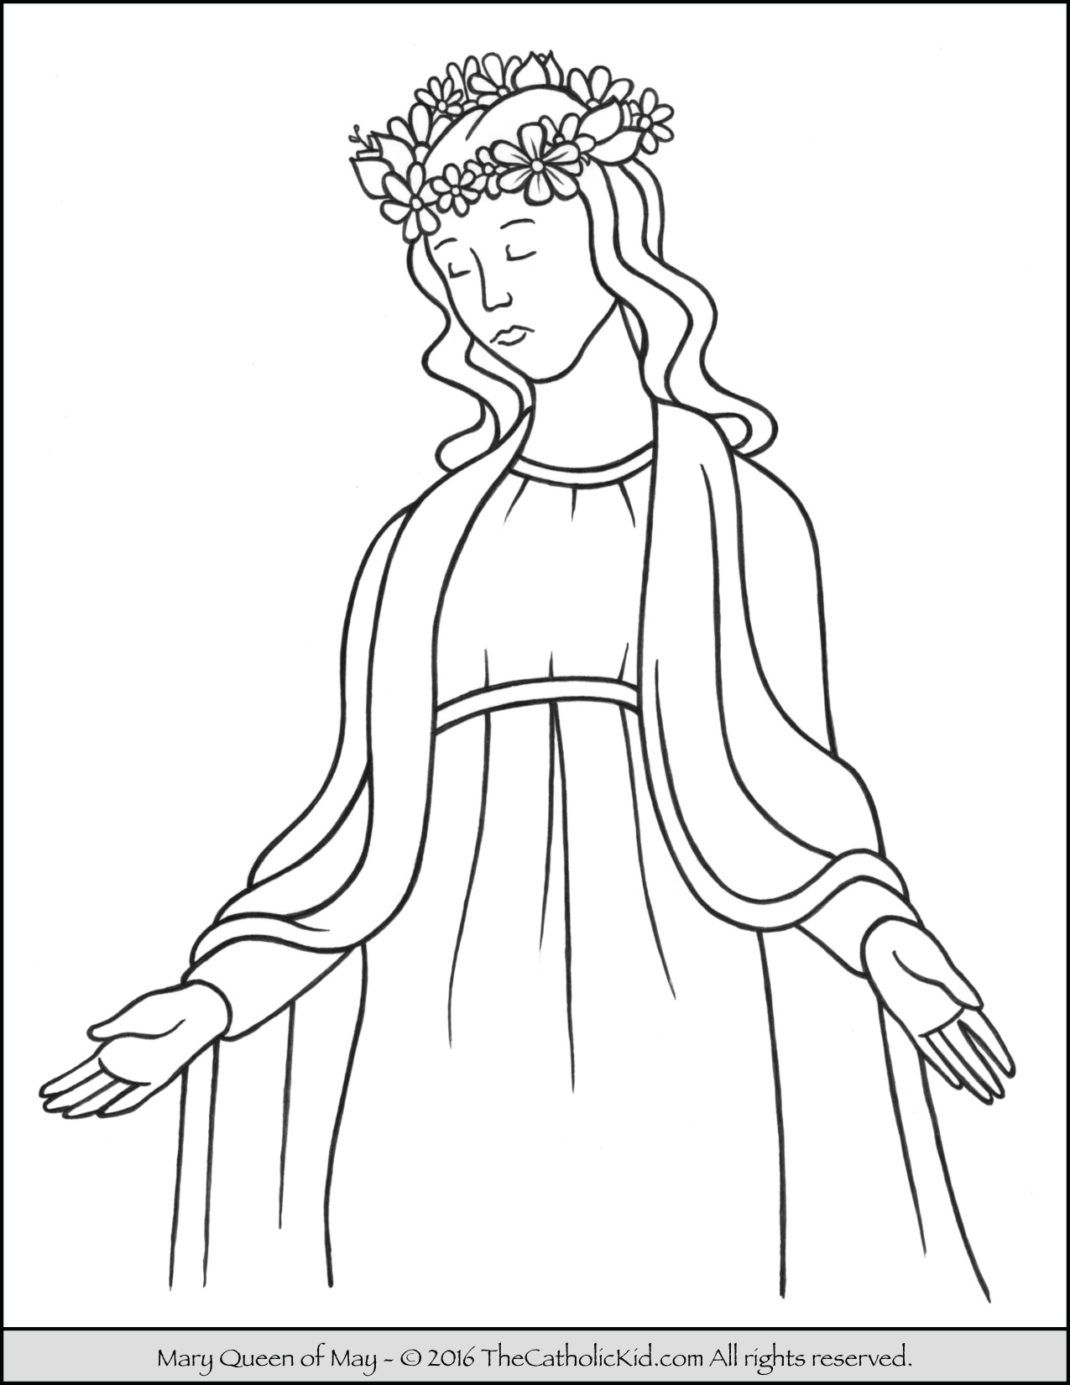 Mary Queen of May Crowning Coloring Page The Catholic